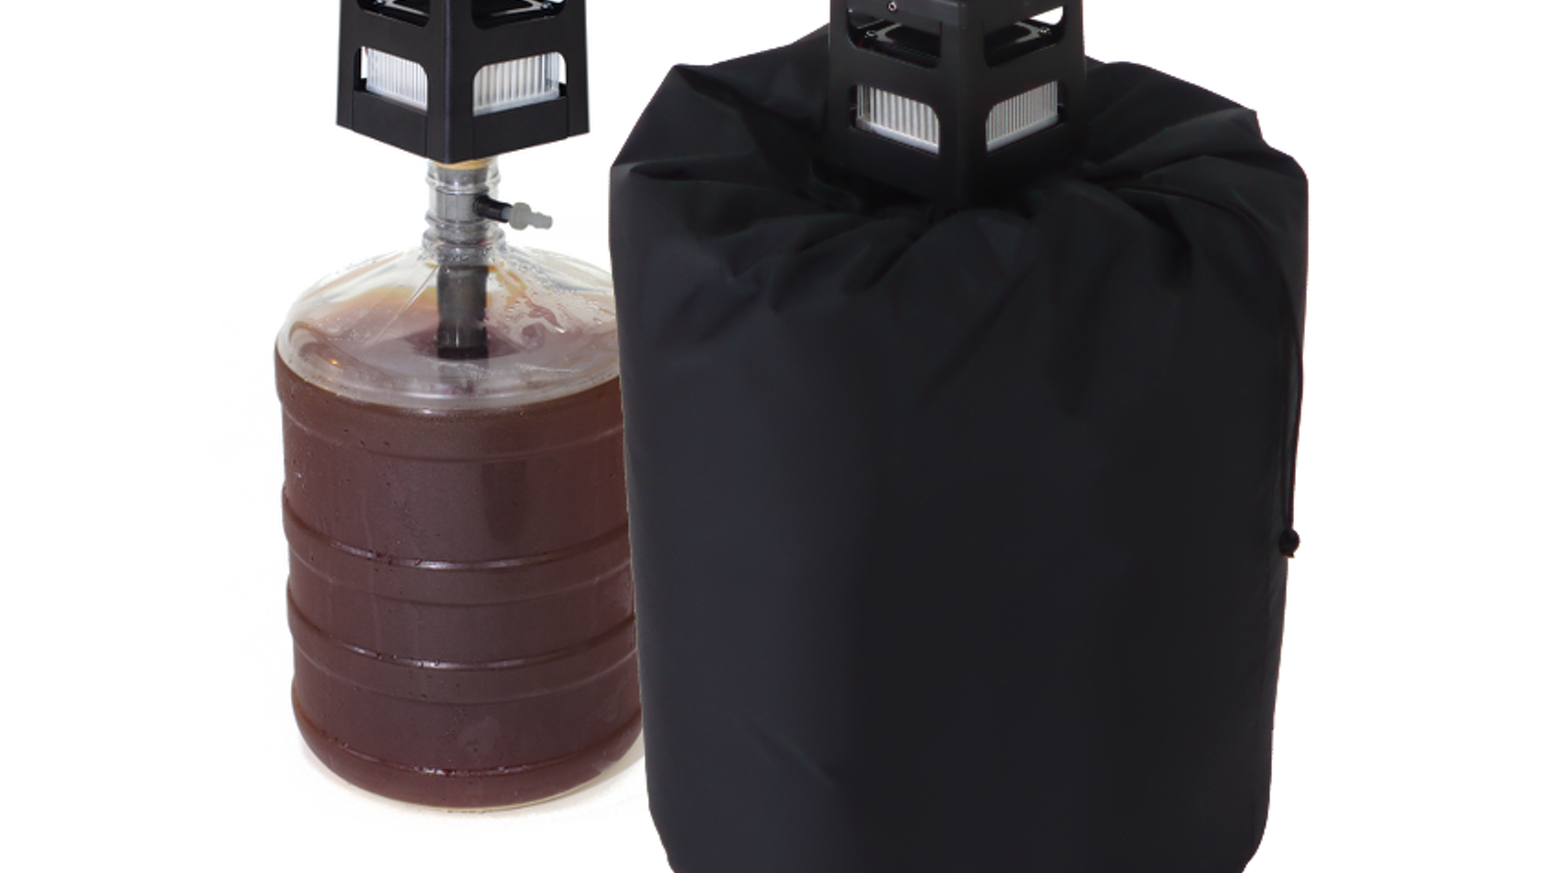 Creates perfect craft and homebrew beer fermentations by seamlessly warming or cooling the beer to 35º F + / - ambient, holds to 0.5ºF.